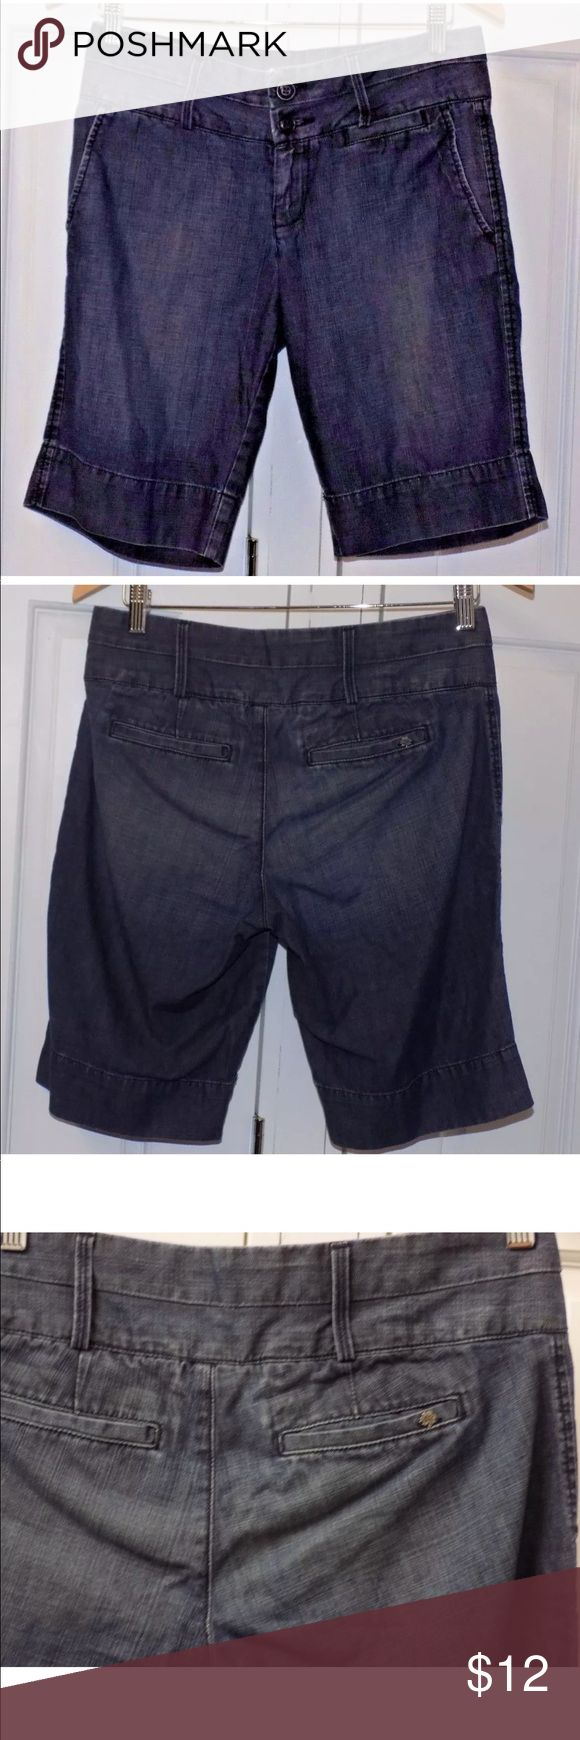 🔴 Lucky Brand Denim Walking Bermuda Shorts Skate Lucky Brand Womens Denim Size 27 Flat Front Walking Bermuda Shorts Skate Beach 100% cotton 2 front pockets & 2 very shallow back pockets. Some wear on the waistband Lucky Brand Shorts Bermudas